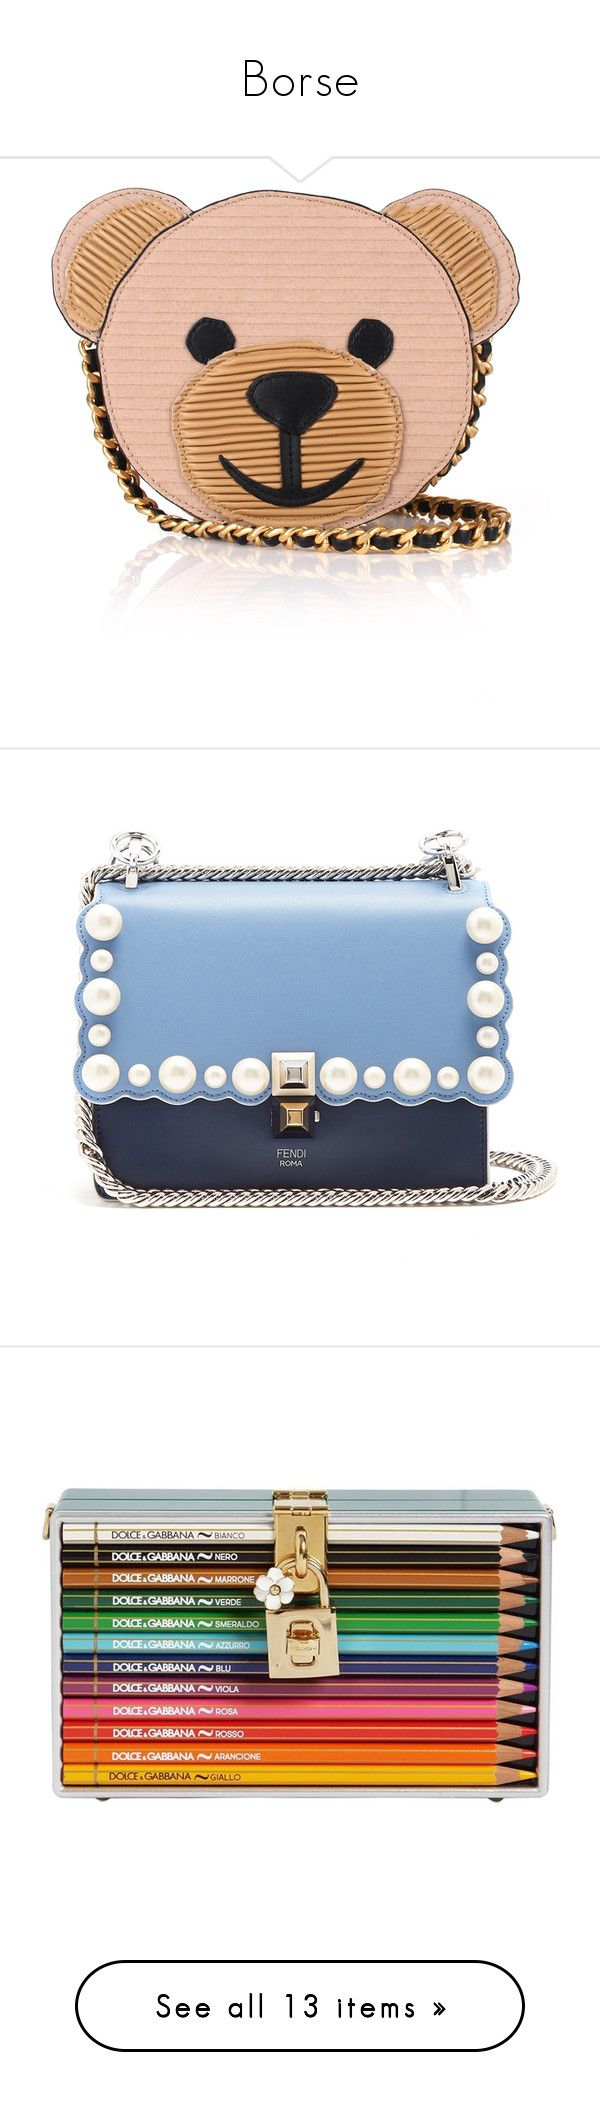 Borse by ileanarod on Polyvore featuring polyvore women's fashion bags handbags shoulder bags purses borse bolsos red handbags handbags shoulder bags cross-body handbag shoulder handbags chain shoulder bag light blue leather purses leather shoulder handbags leather crossbody handbags leather cross body purse over the shoulder bags clutches fillers multicolor hard clutch embellished purse colorful handbags multi colored clutches kiss-lock handbags black chain strap purse chain strap handbags…